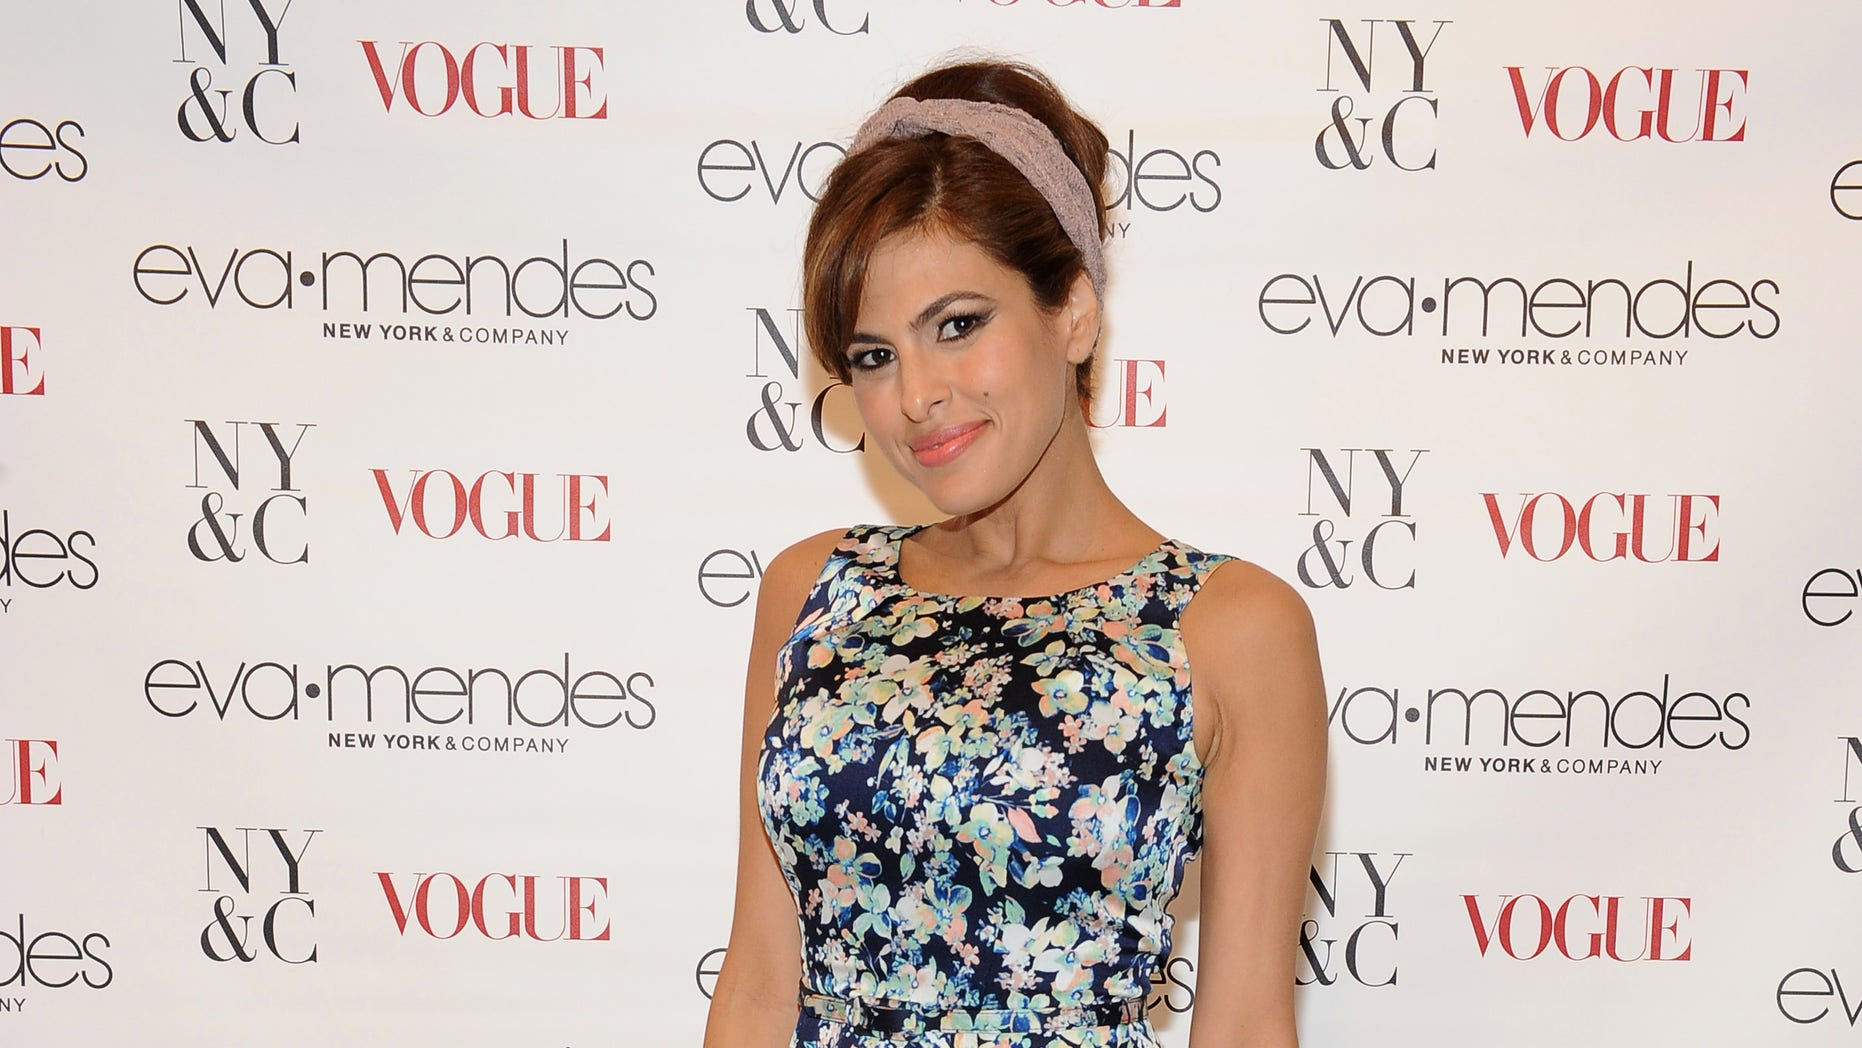 CERRITOS, CA - MARCH 19: Eva Mendes attends the Eva Mendes For New York & Company Spring Launch at the Los Cerritos Center on March 19, 2014 in Cerritos, California.  (Photo by Angela Weiss/Getty Images for New York & Comp)